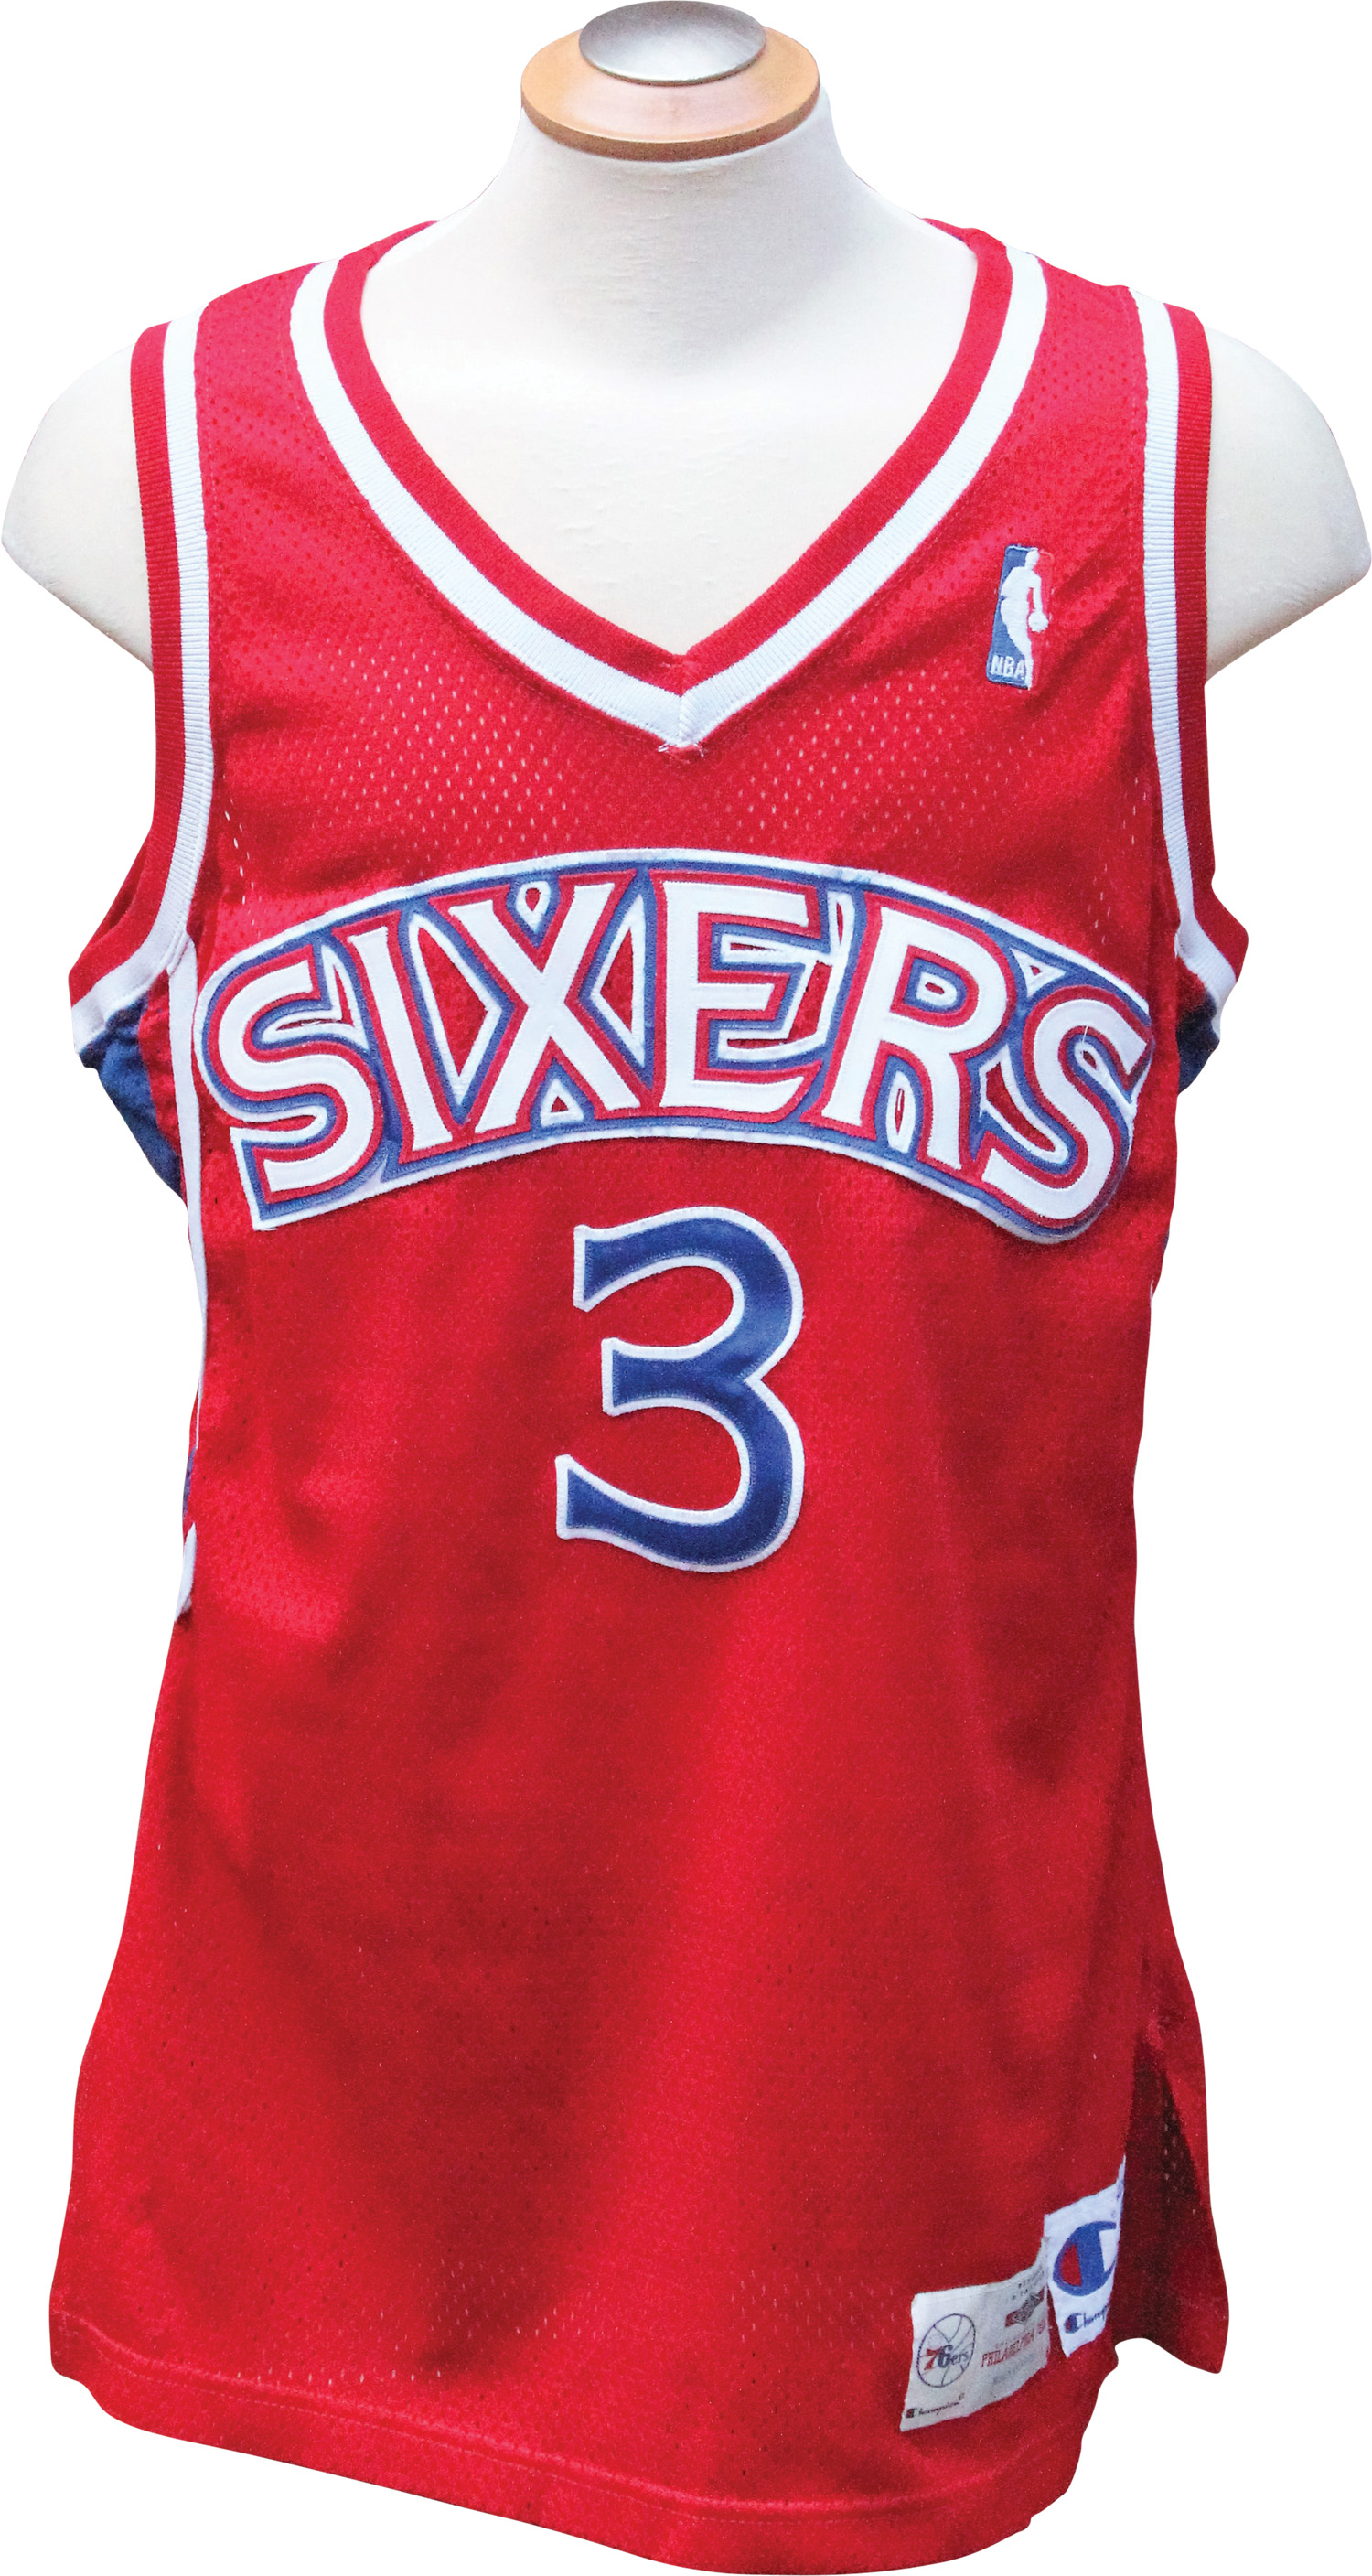 20d5ff7e 1996-97 Allen Iverson Game Used Rookie Season Philadelphia 76ers Jersey  with LOA ...